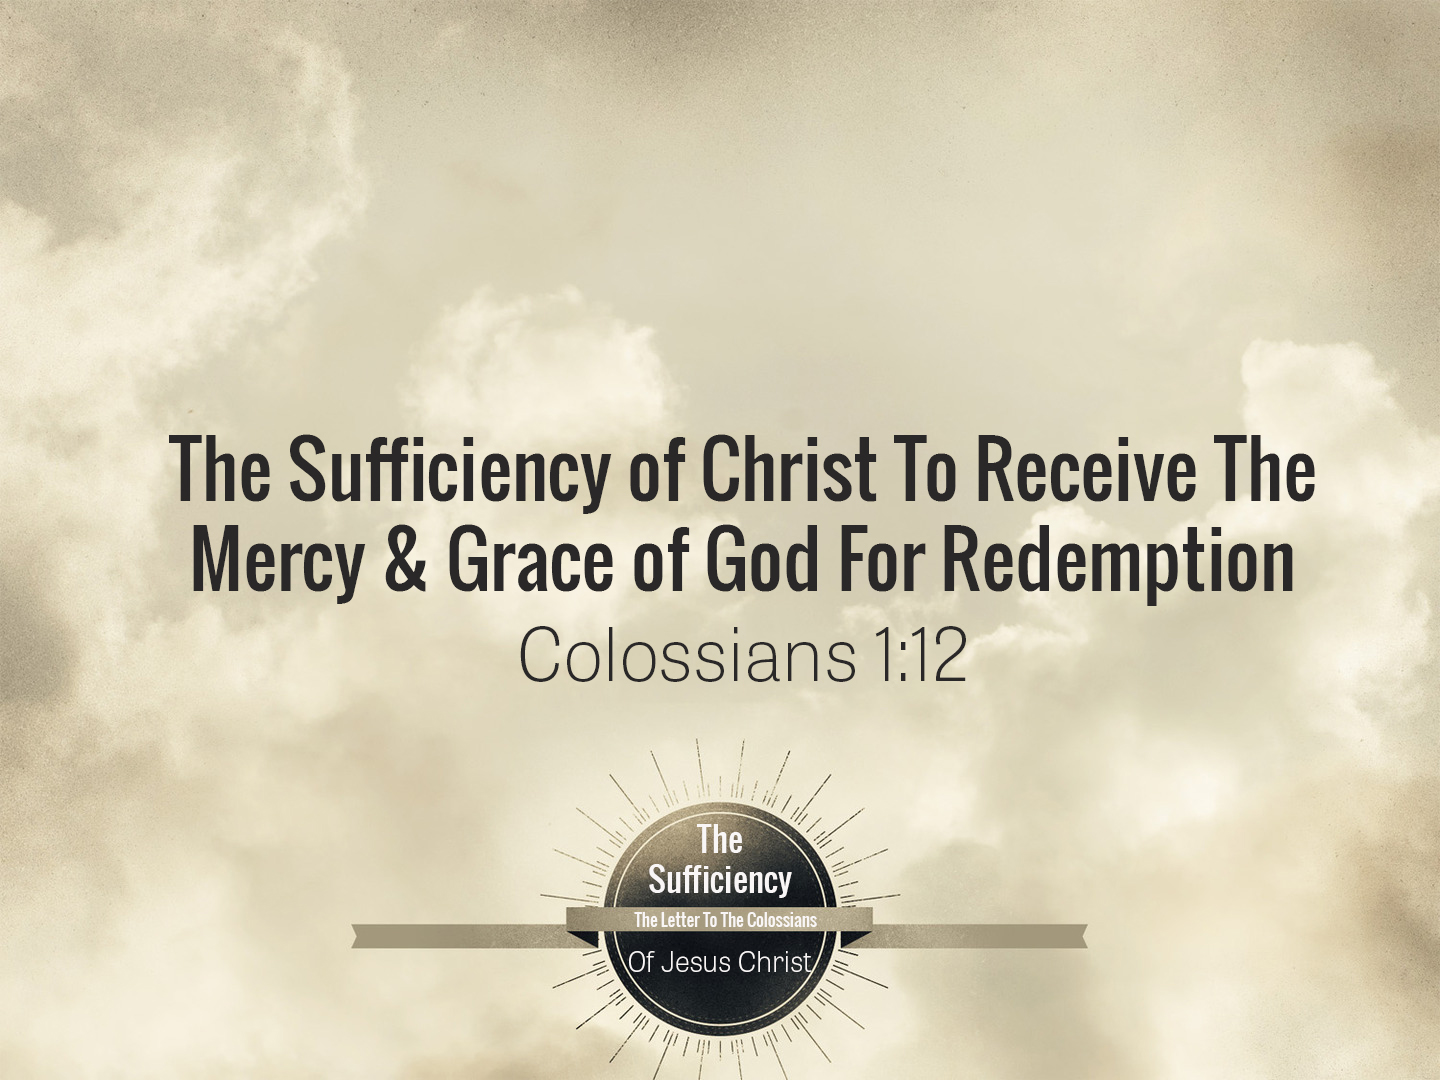 Colossians 1v12 The Sufficiency Of Christ To Receive The Mercy & Grace Of God For Redemption